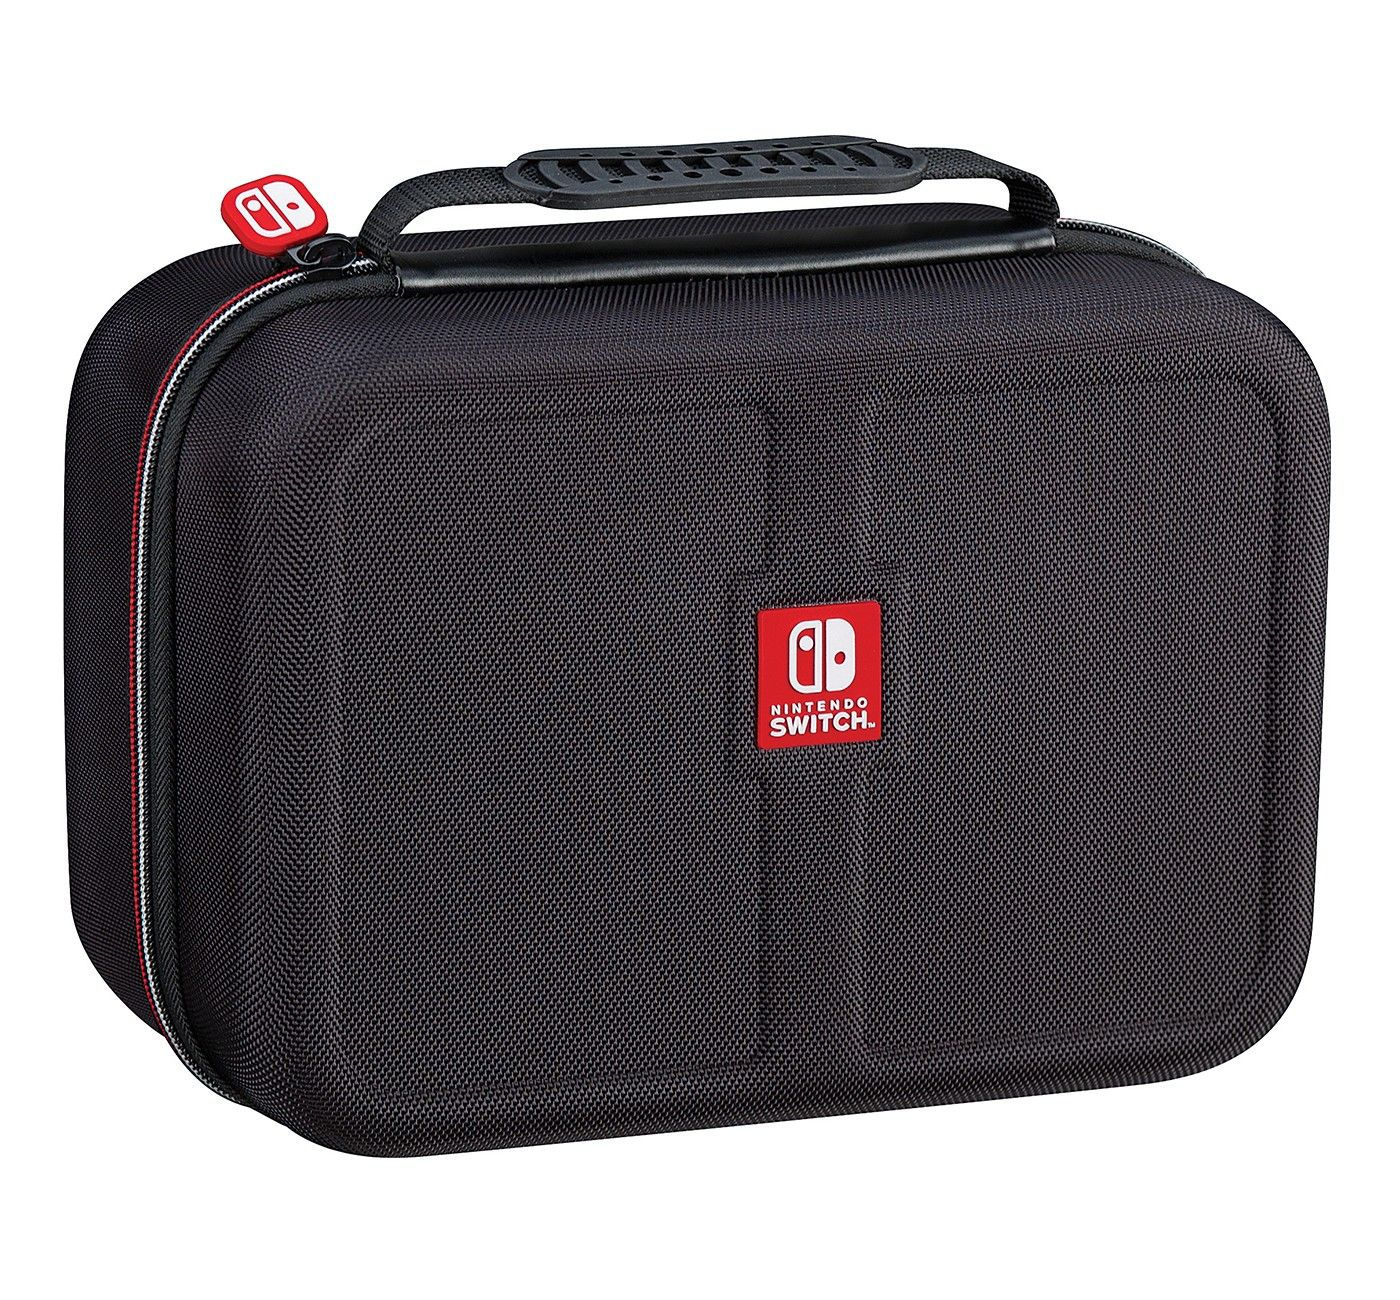 Nintendo Switch Game Traveler Deluxe System Case Nintendo Switch System Nintendo Switch Nintendo Switch Games